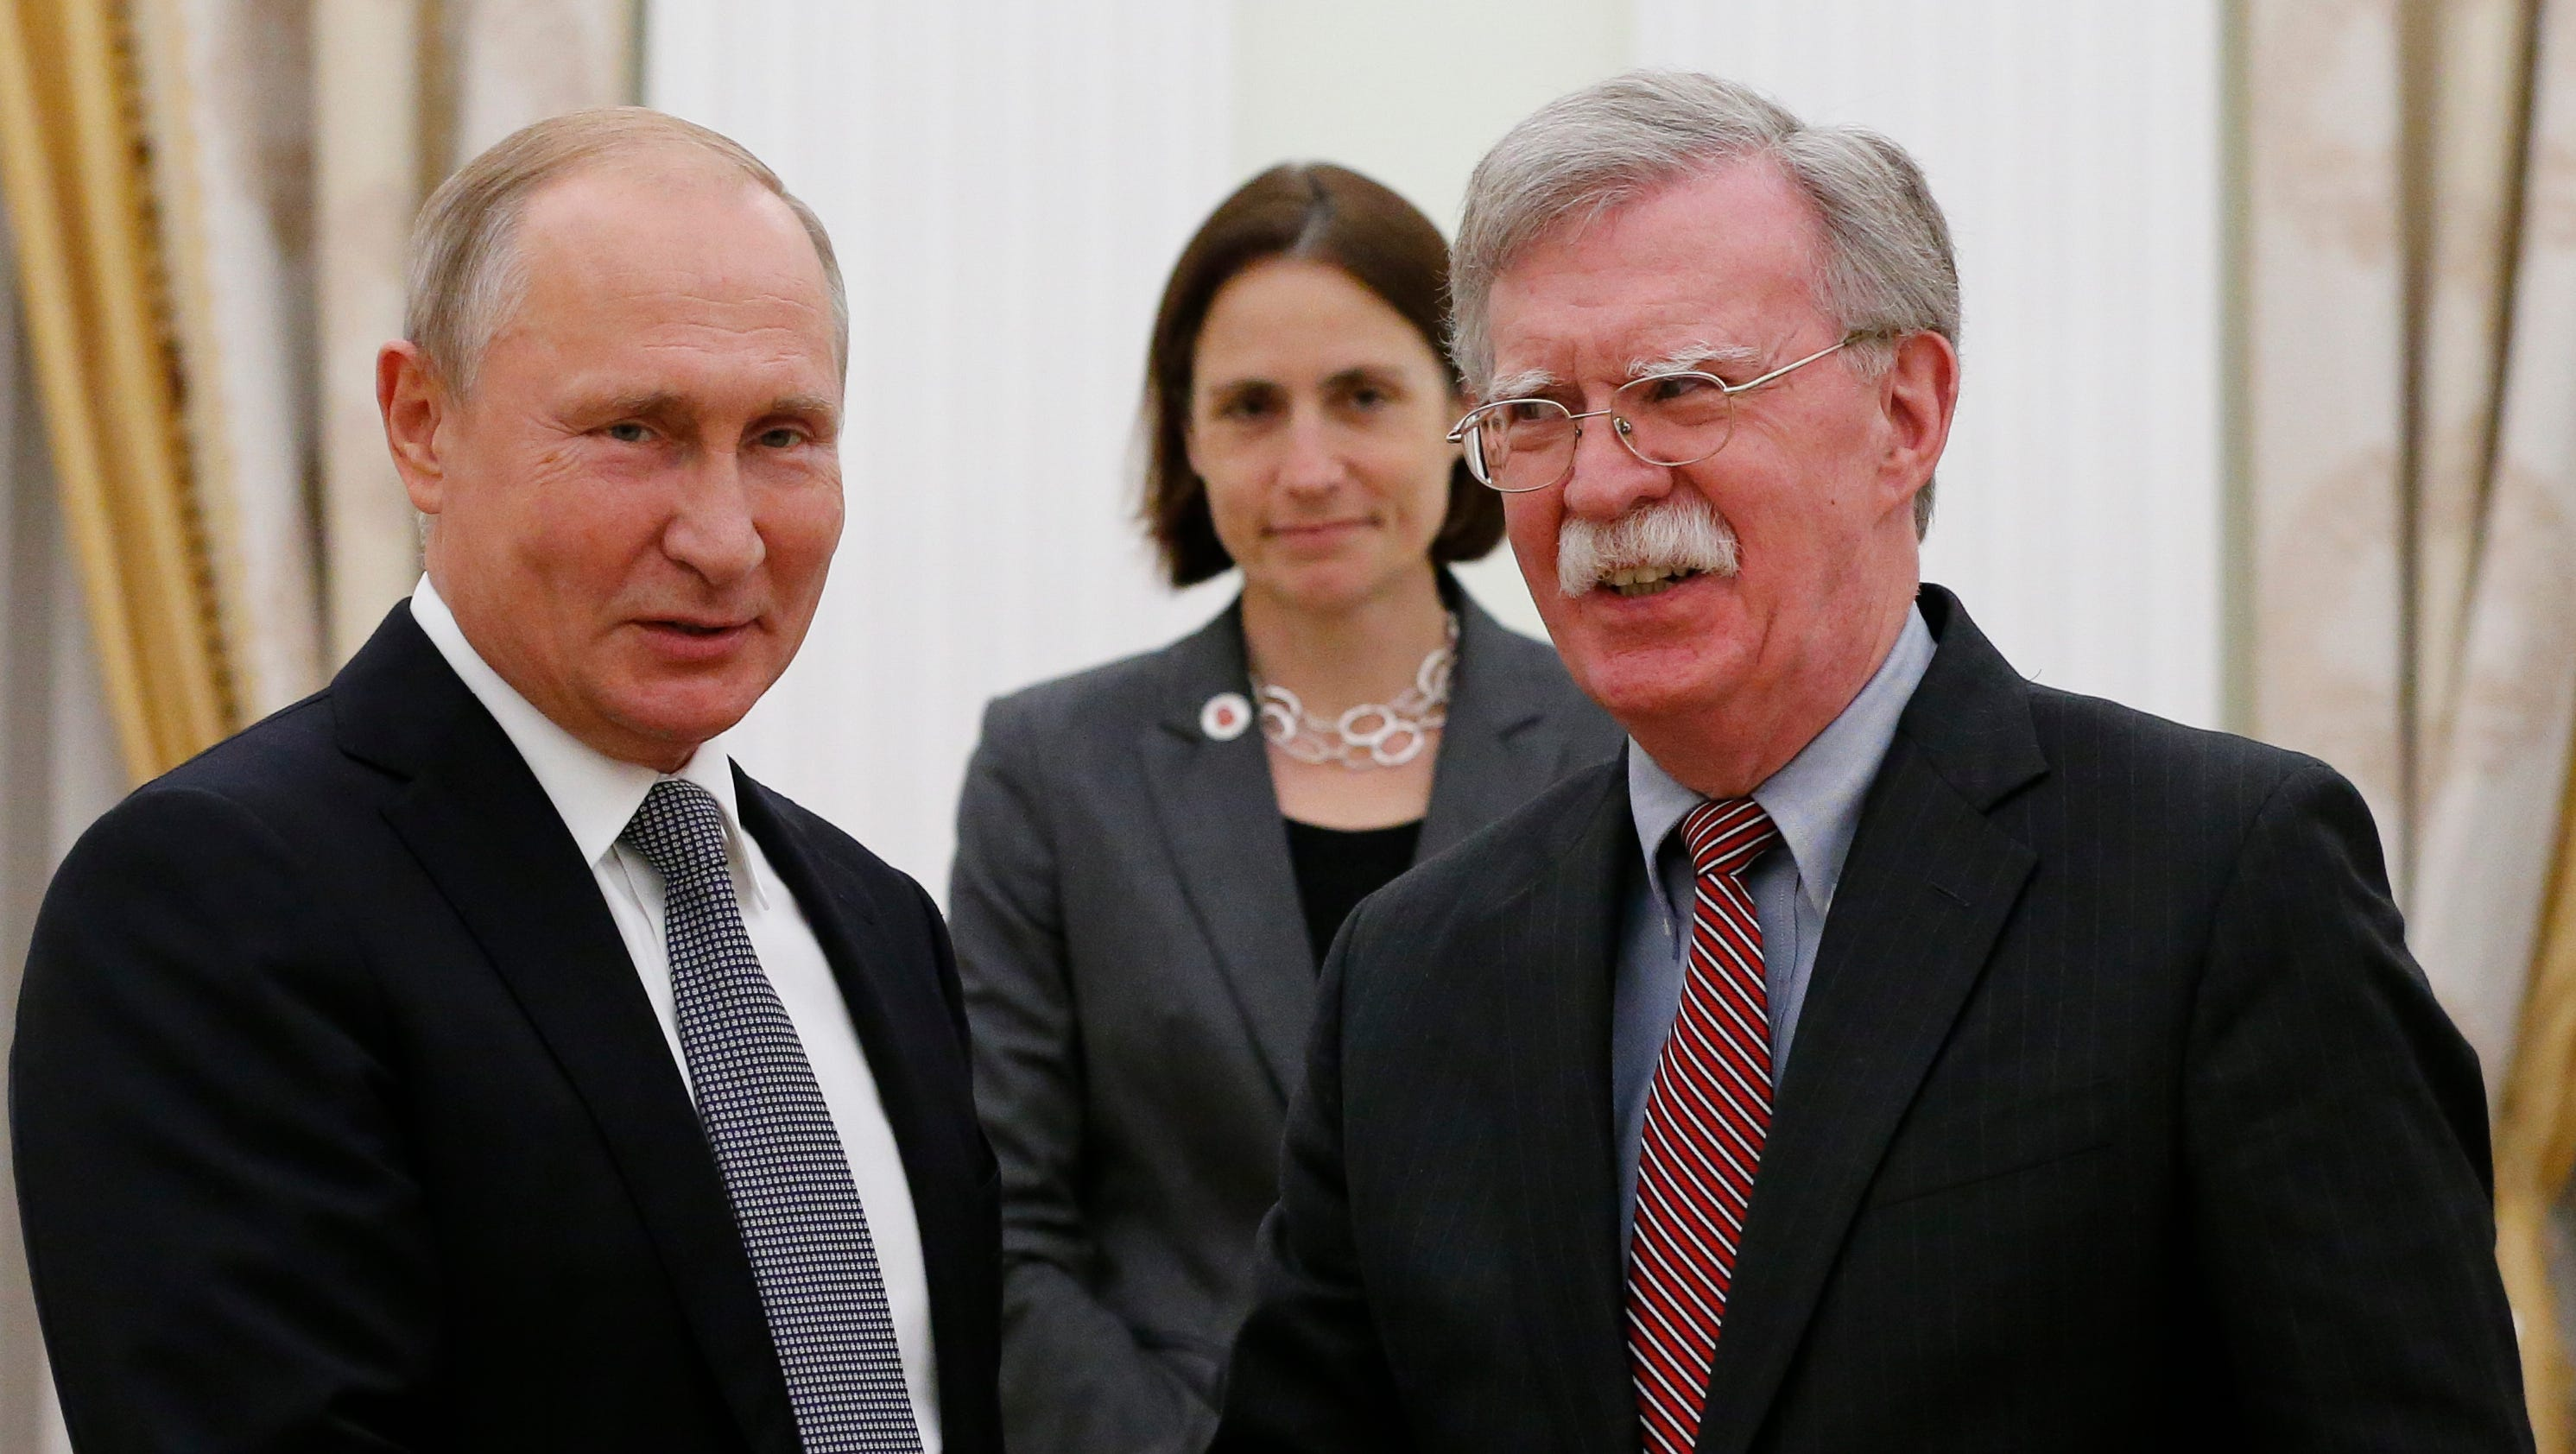 Russian President Vladimir Putin, left, and U.S. National security adviser John Bolton shakes hands during their meeting in the Kremlin in Moscow, Russia, Tuesday, Oct. 23, 2018. Putin poked fun at the official seal of the United States while hosting U.S. President Donald Trump's national security adviser Tuesday, saying he wondered if the American eagle had plucked all the olives from the branch in its talon.